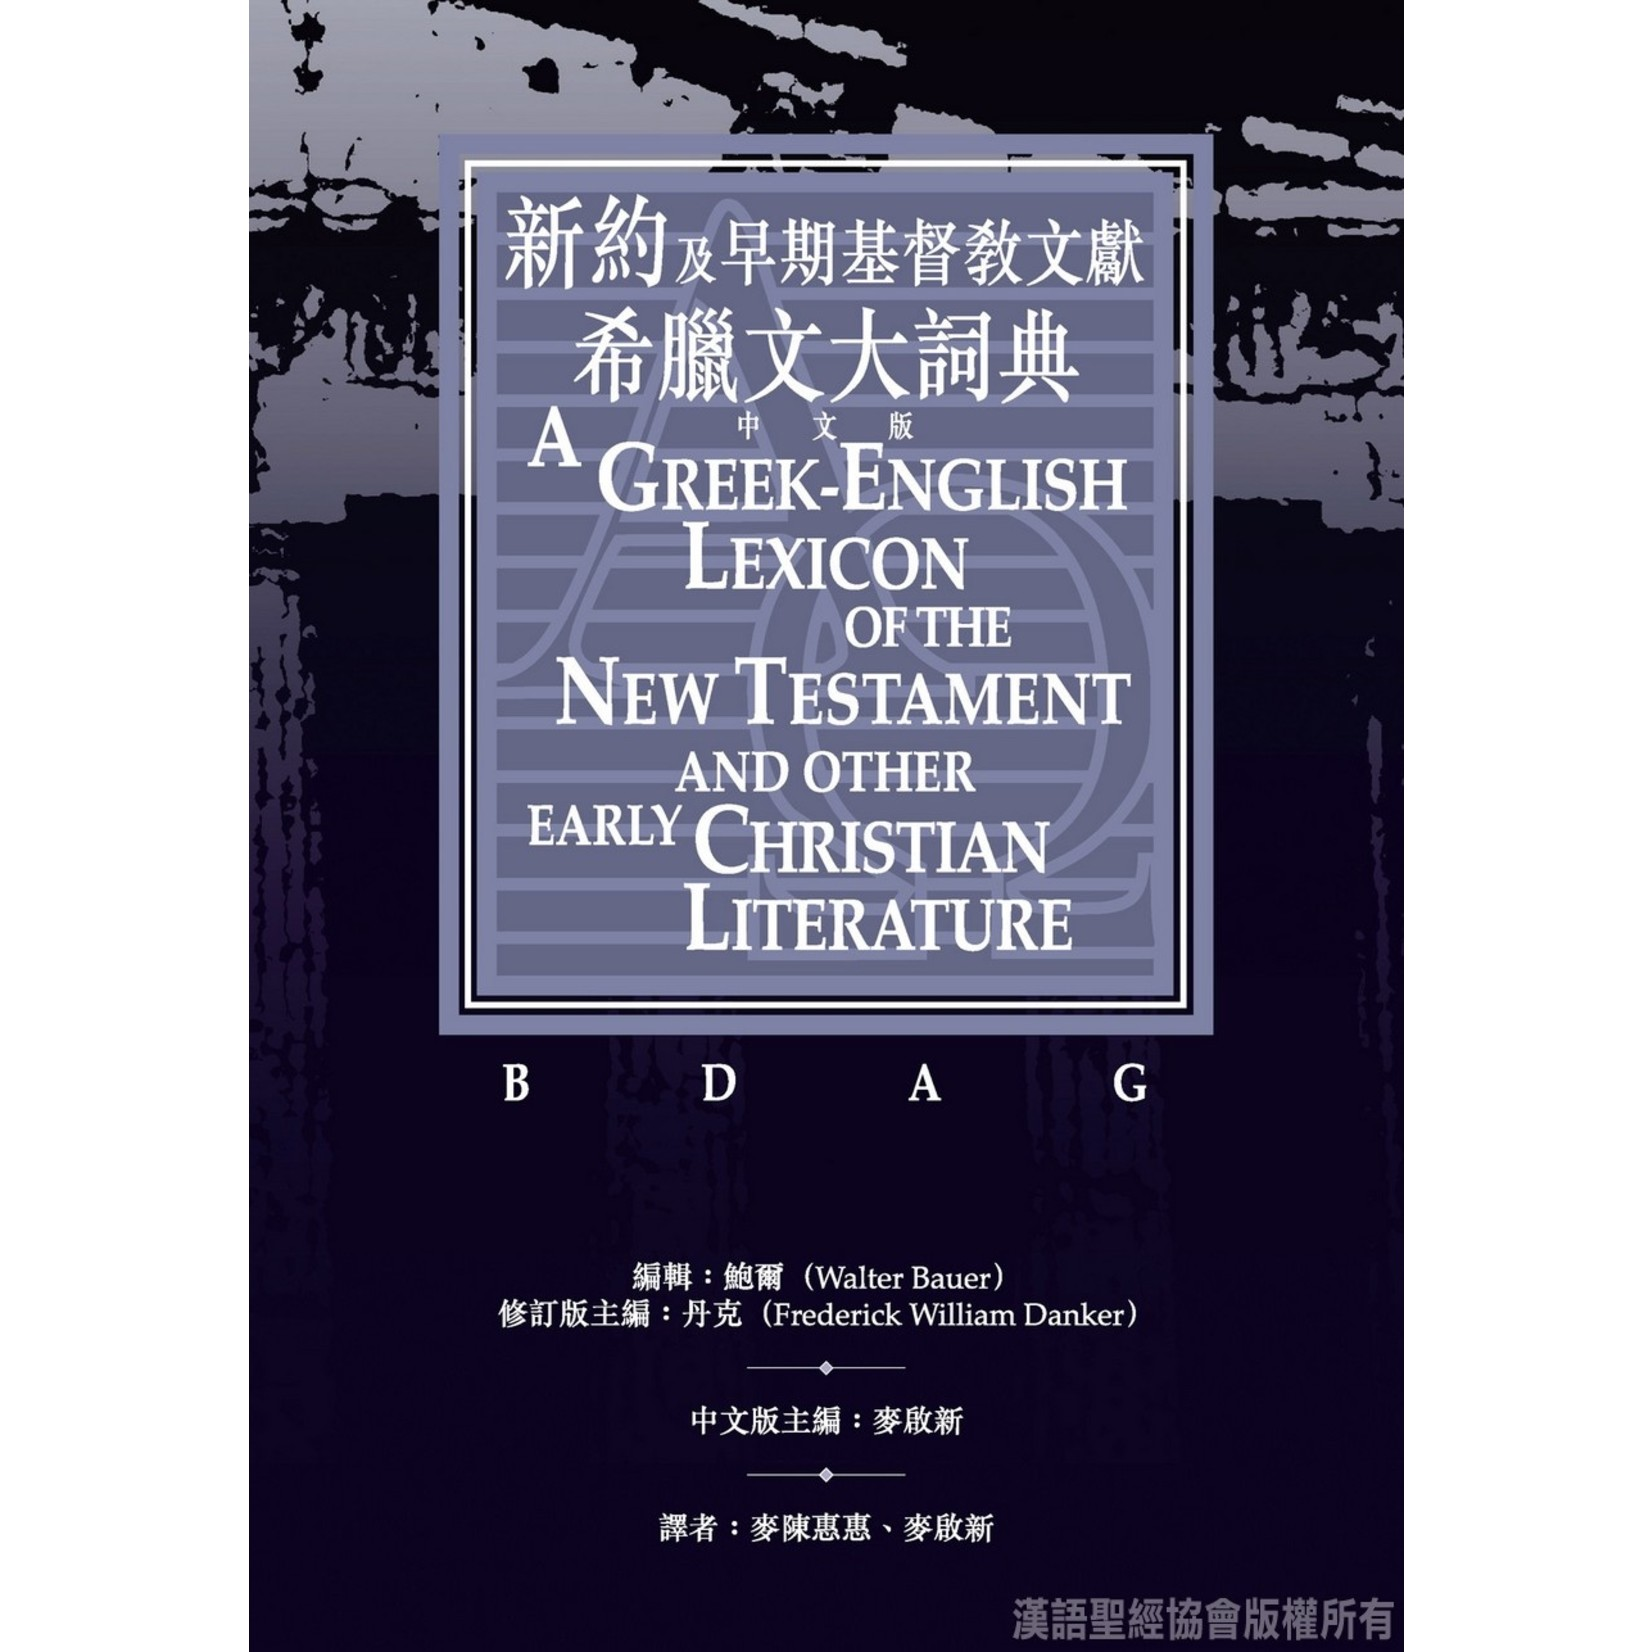 漢語聖經協會 Chinese Bible International 新約及早期基督教文獻希臘文大詞典 Greek-English Lexicon of the New Testament and Other Early Christian Literature